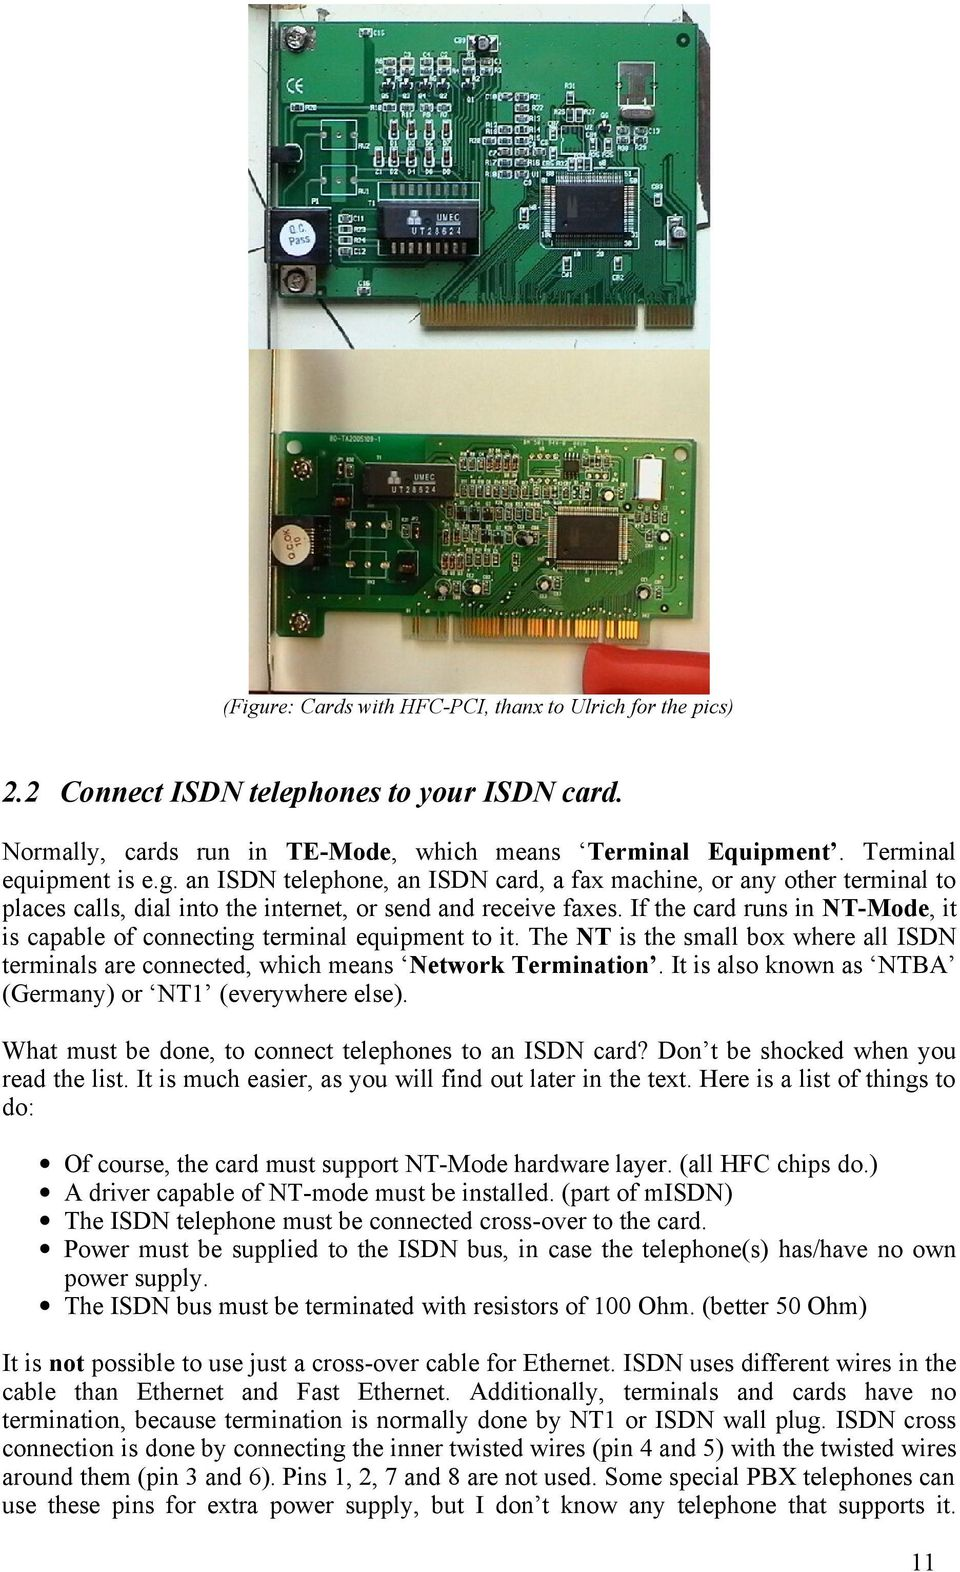 DRIVERS FOR DYNALINK TAS-106H ISDN INTERNAL PCI